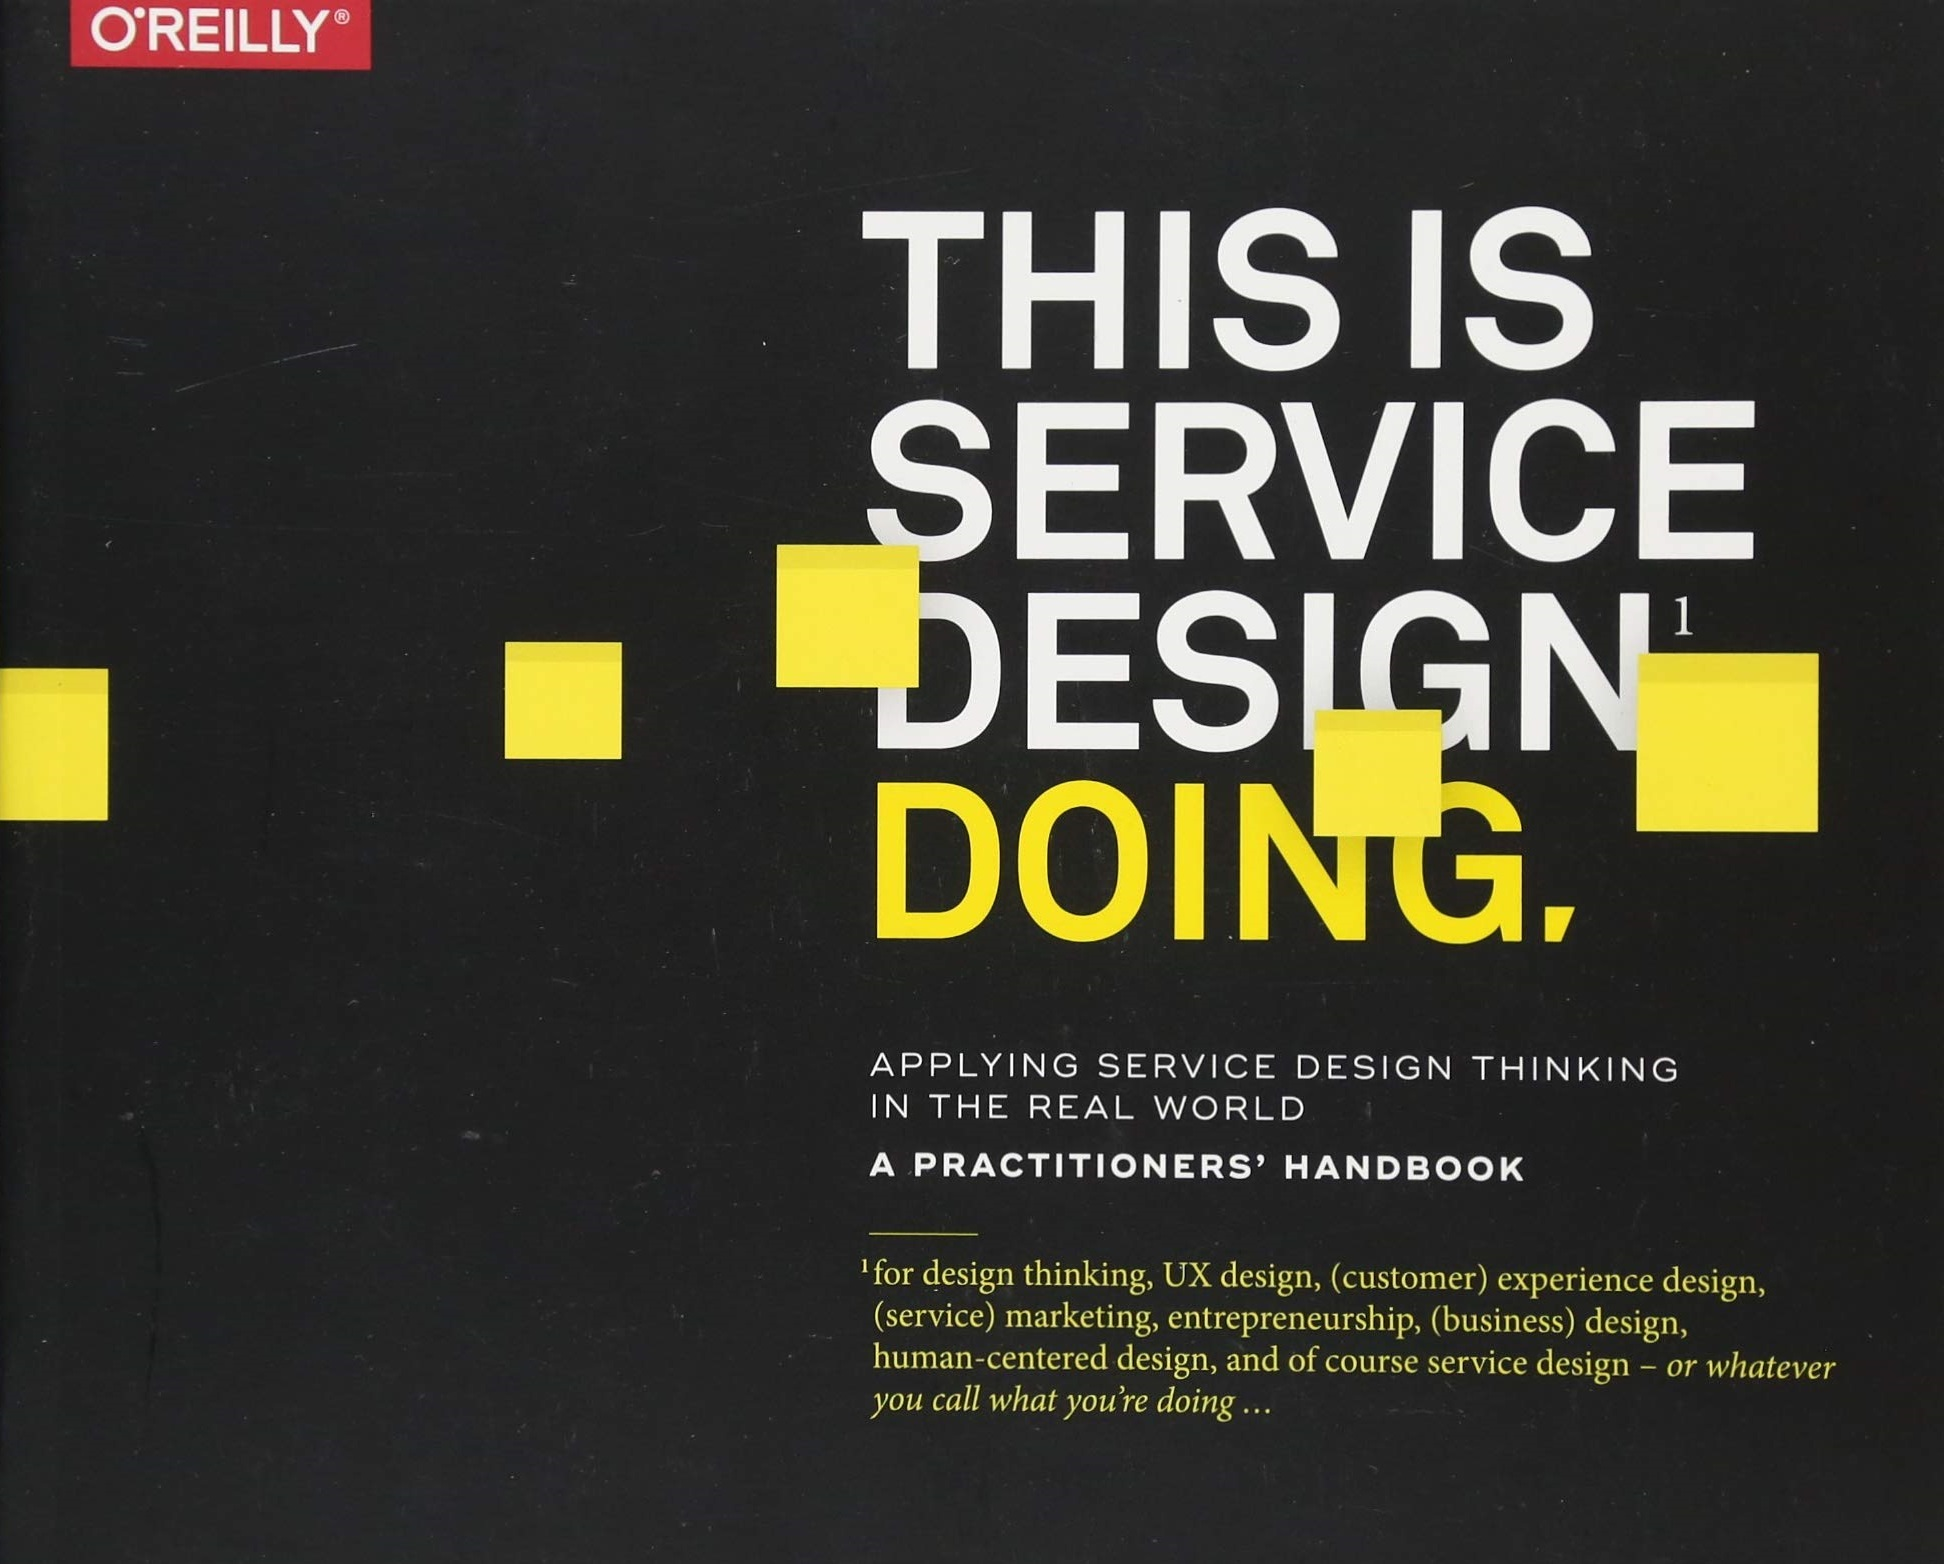 This Is Service Design Doing Applying Service Design Thinking in the Real World 1st Edition